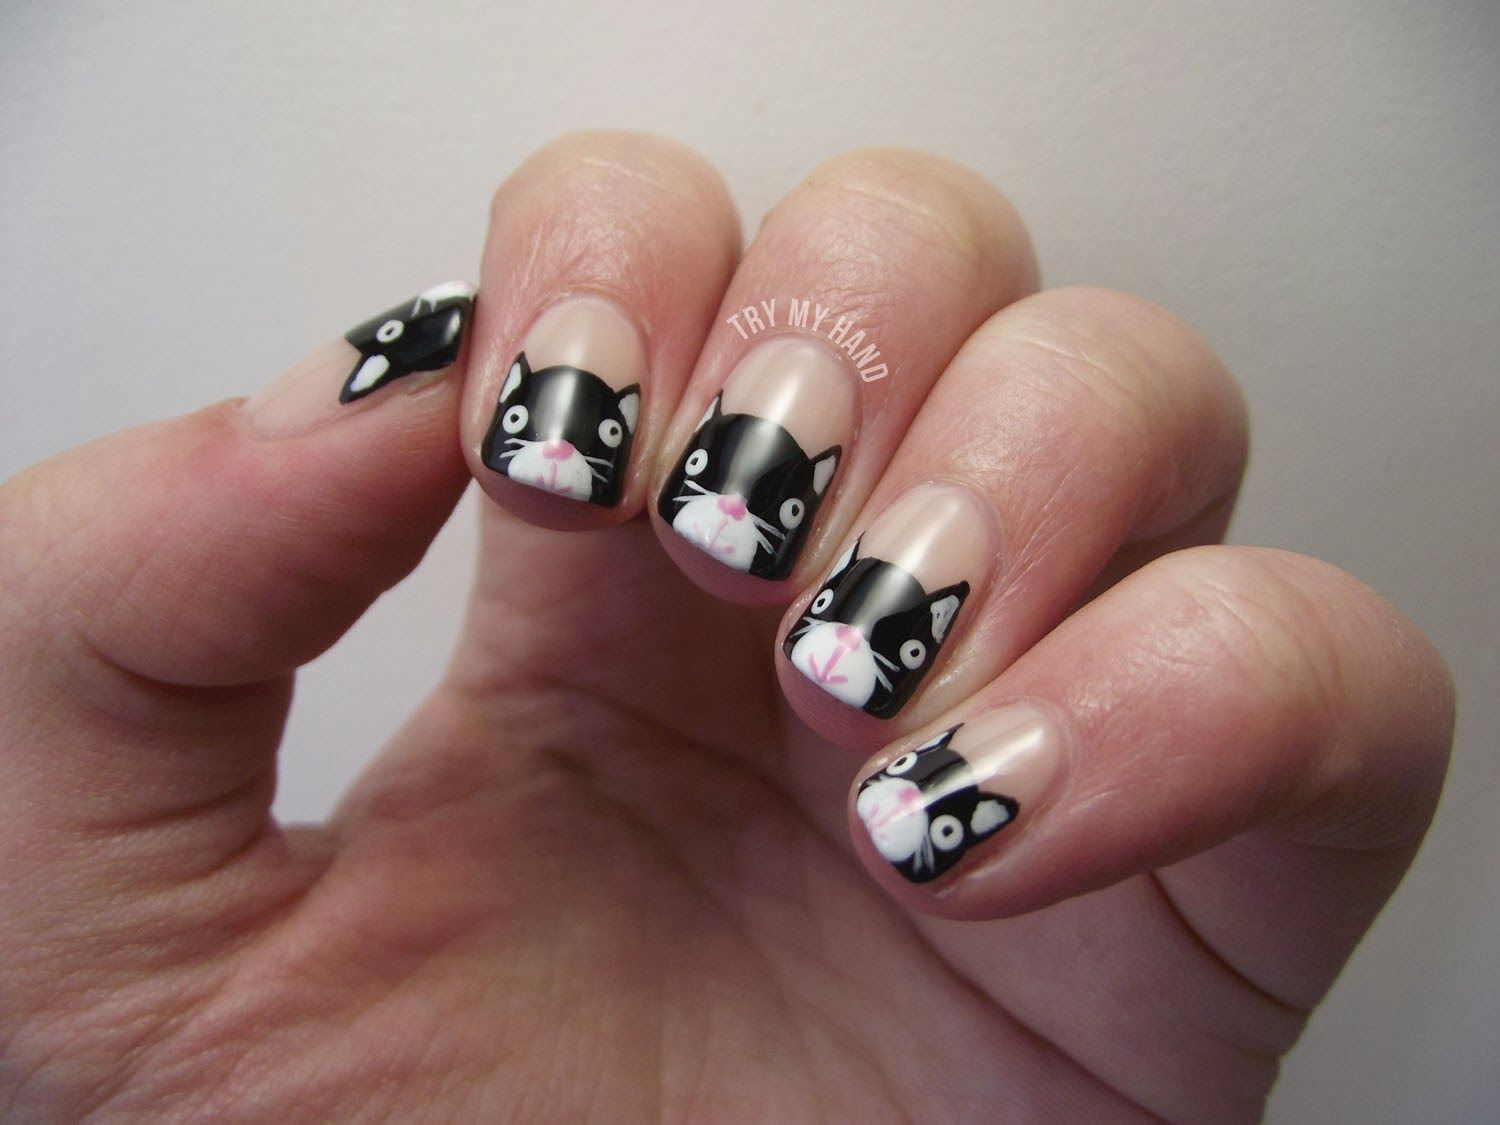 Simple nail designs for beginners nail art design - Cute nail art designs to do at home ...